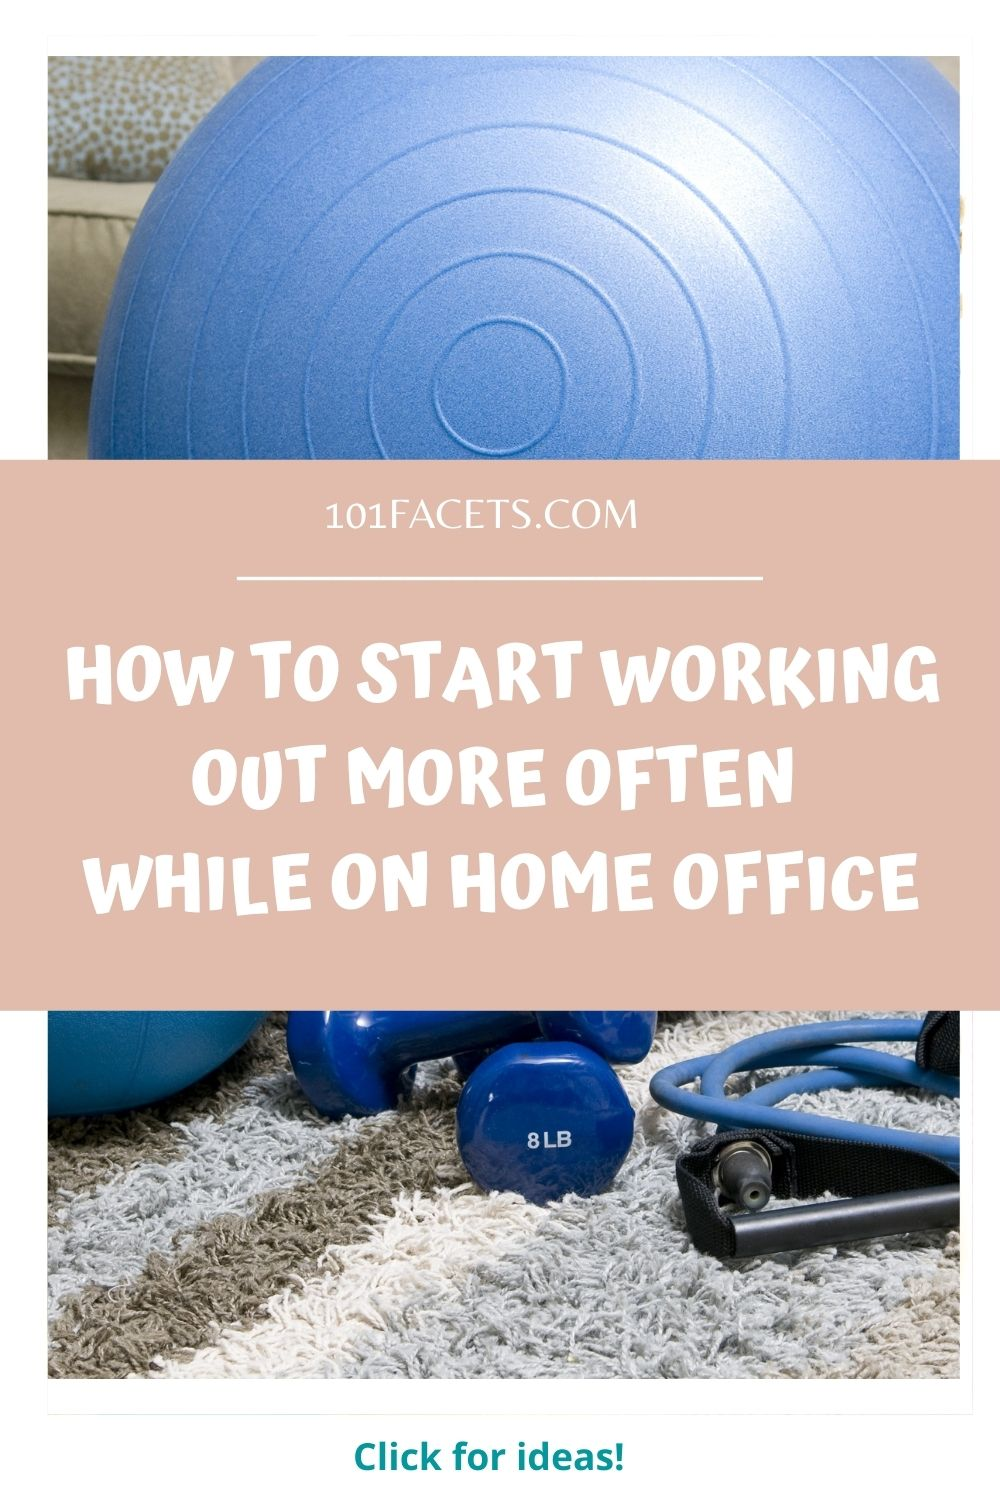 How to Start Working Out More Often While On Home Office